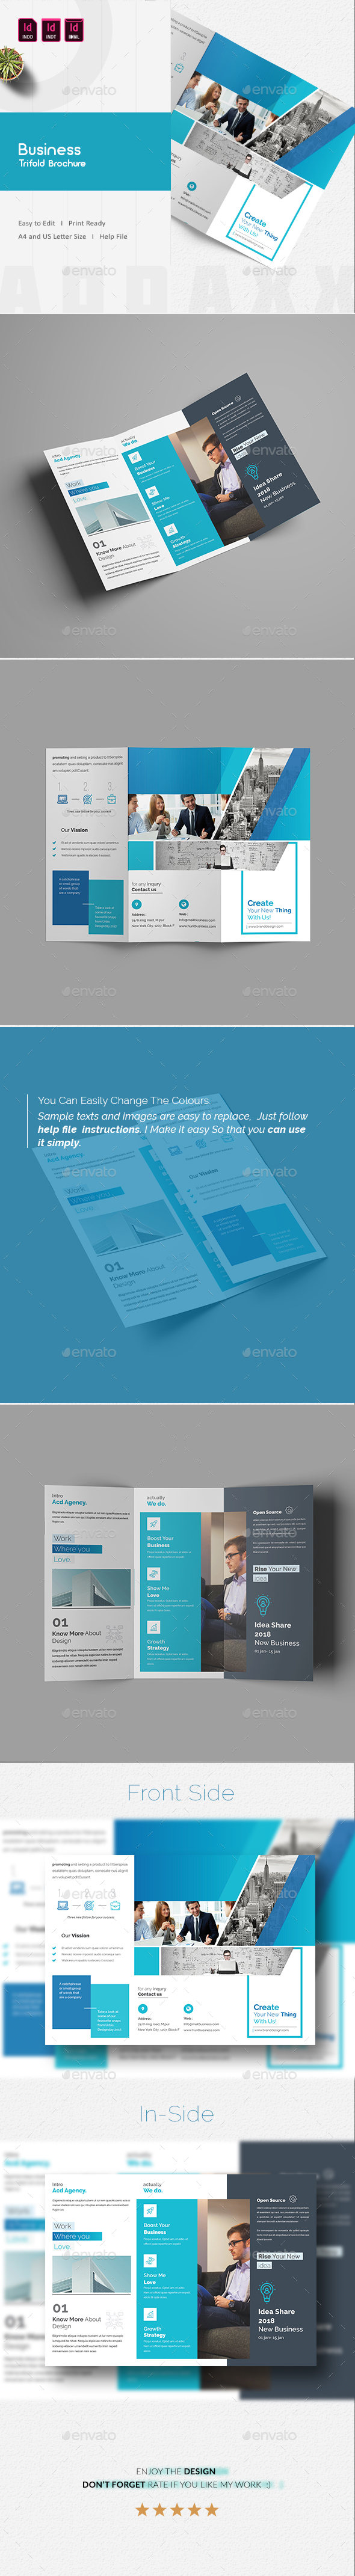 GraphicRiver Business Trifold Brochure 21185996